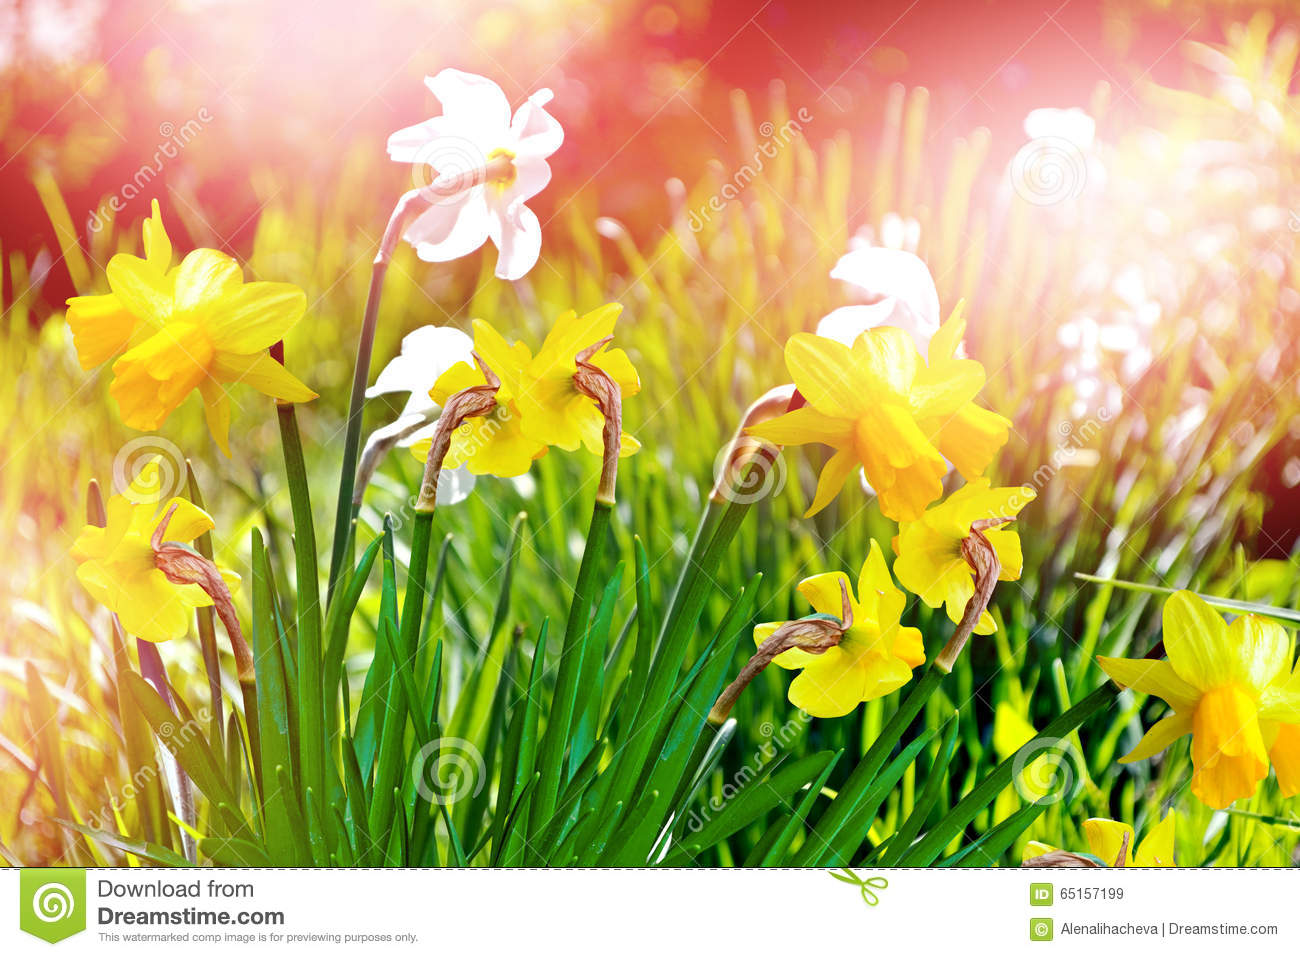 Spring landscape beautiful spring flowers daffodils stock image spring landscape beautiful spring flowers daffodils mightylinksfo